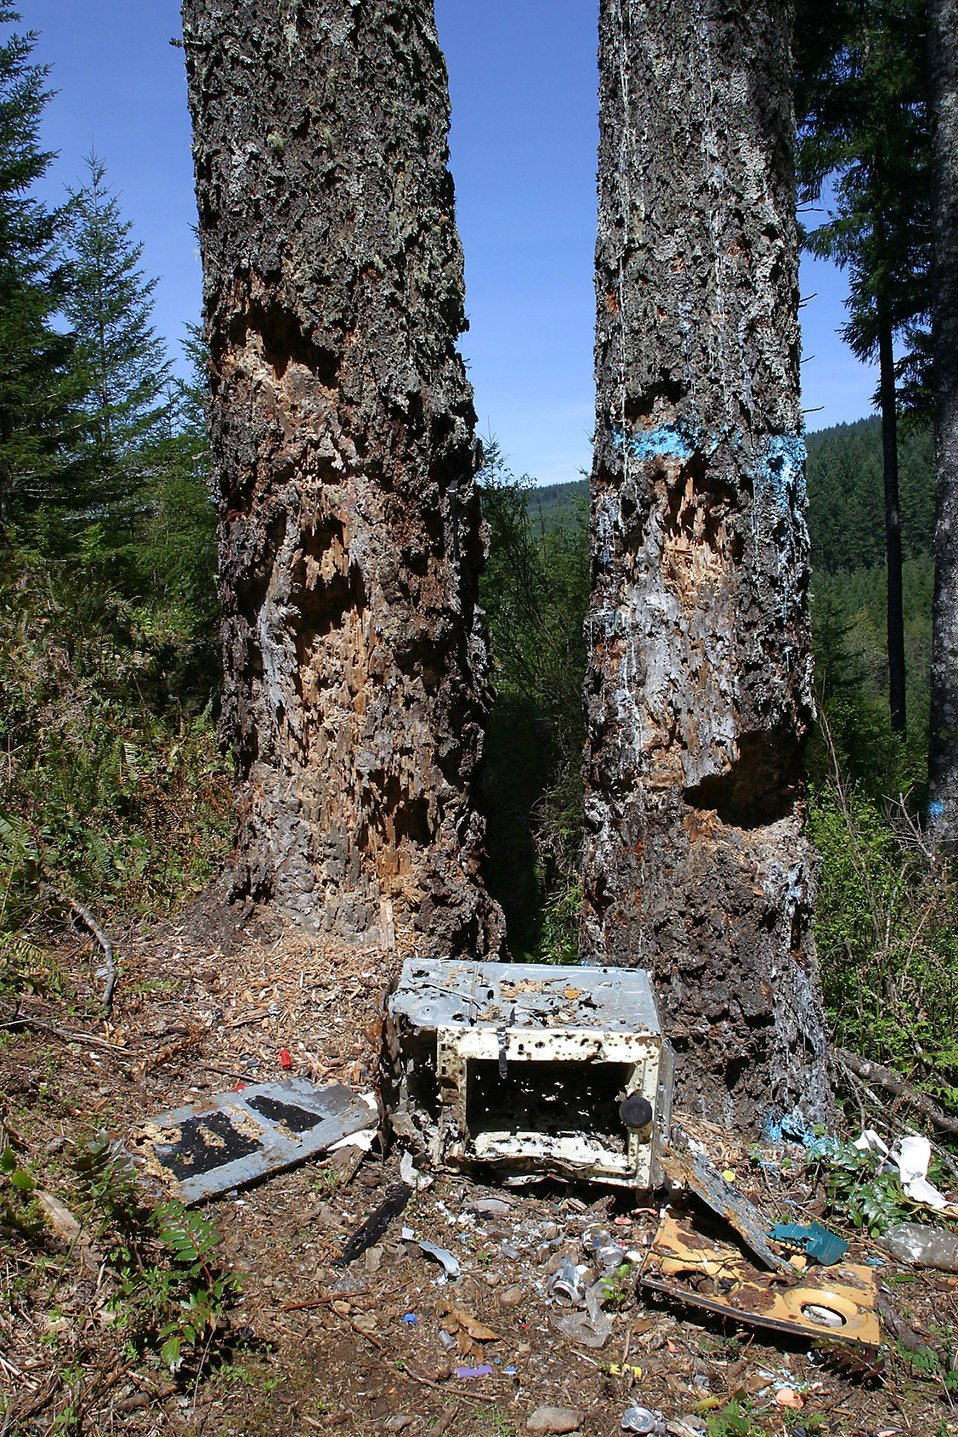 Illegal Dumping Ground In Santiam Watershed Used As A Shooting Range Public Domain Mark